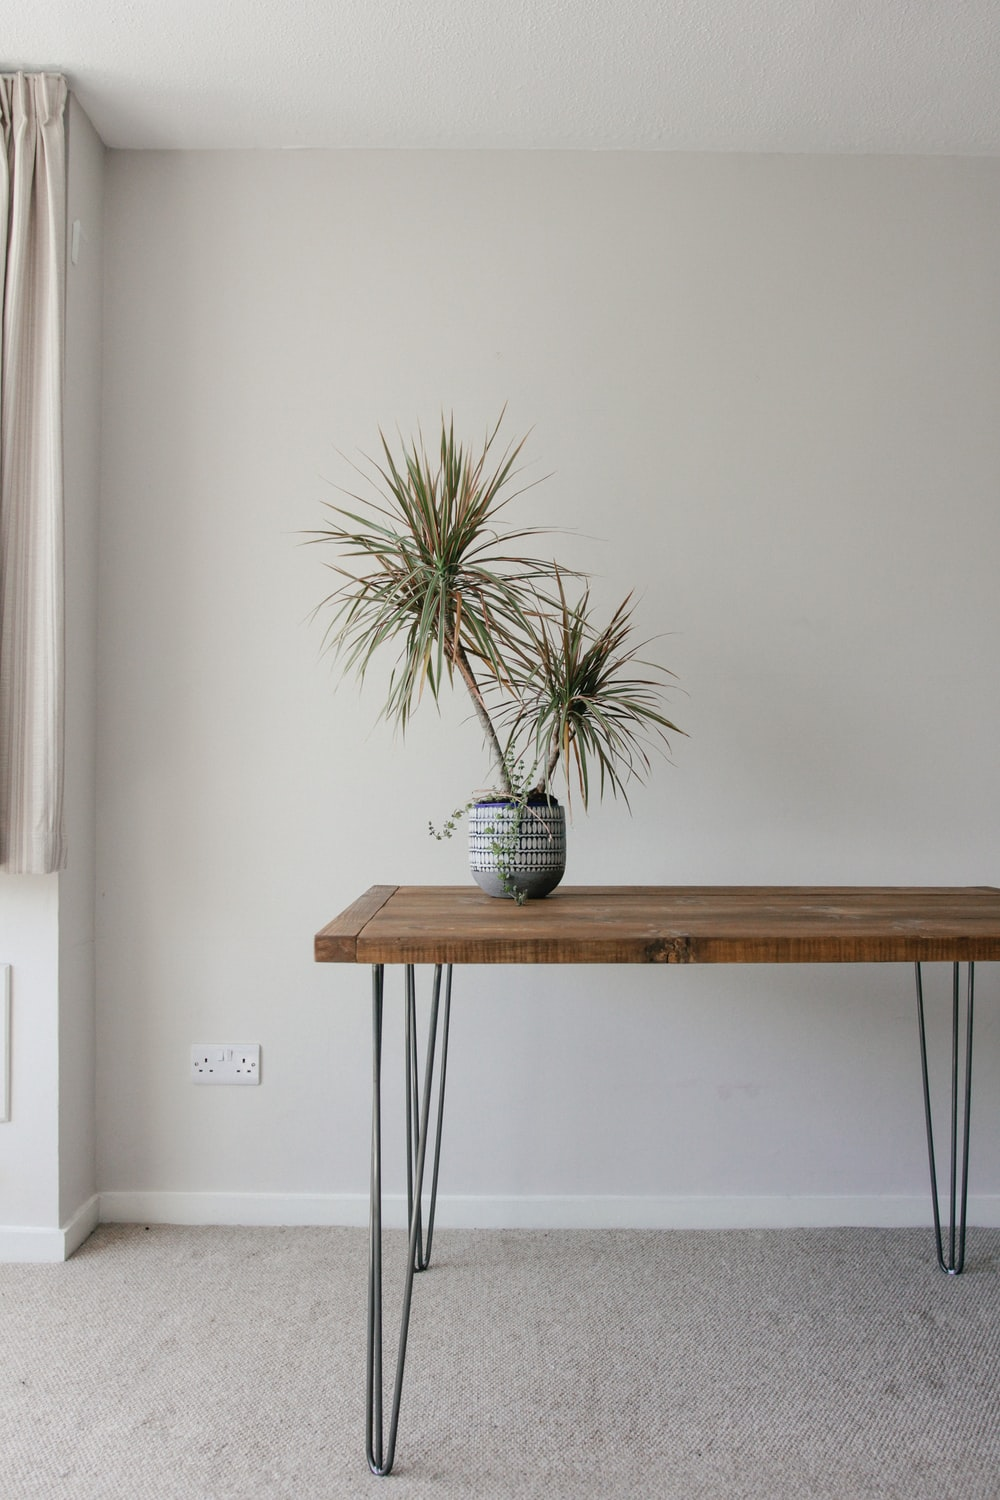 green plant on blue ceramic pot on brown wooden table